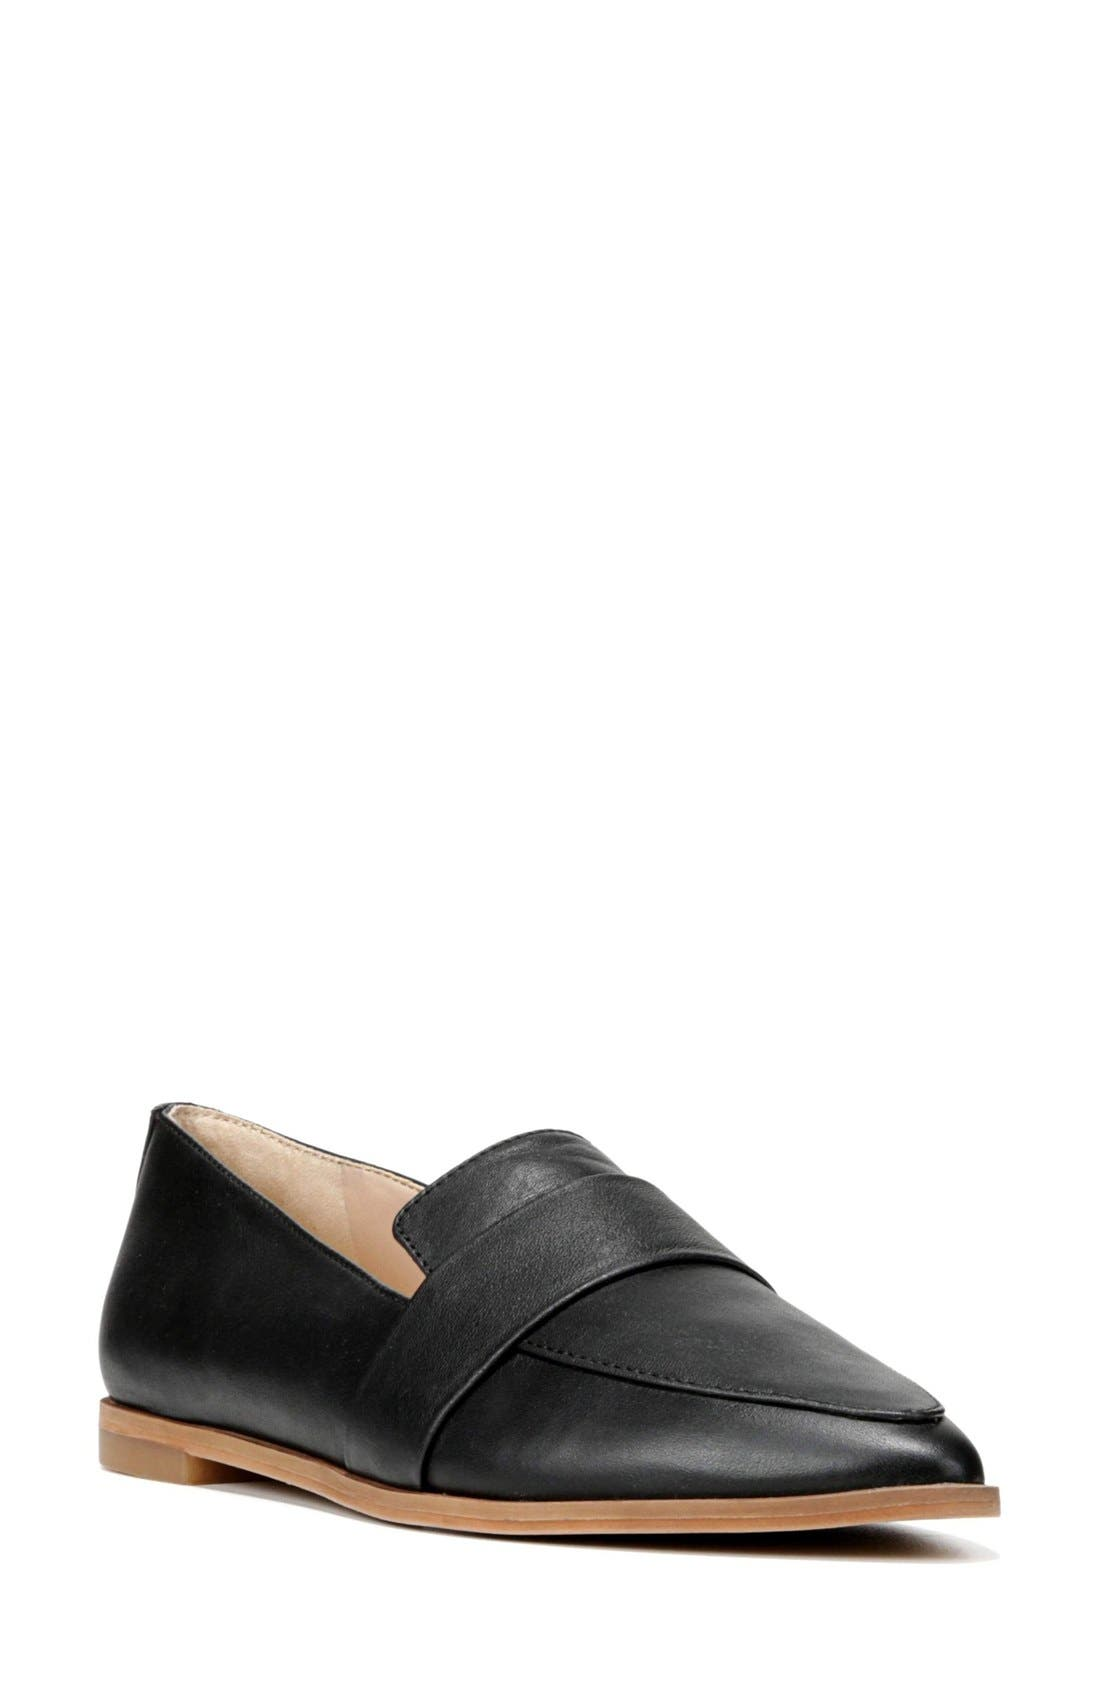 DR. SCHOLLS Ashah Pointed Toe Flat